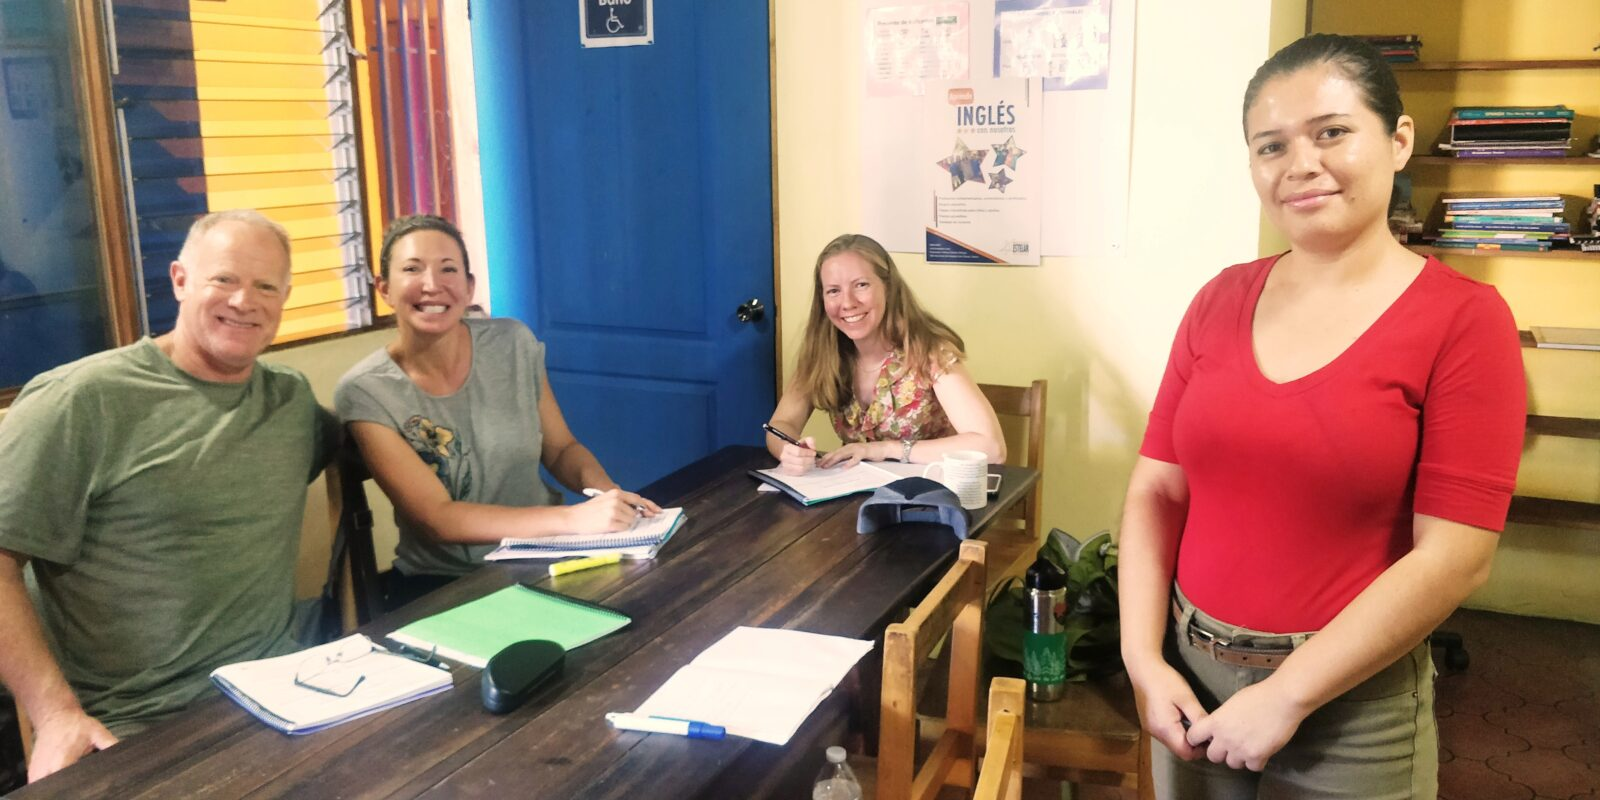 Spanish immersion classes for English teachers